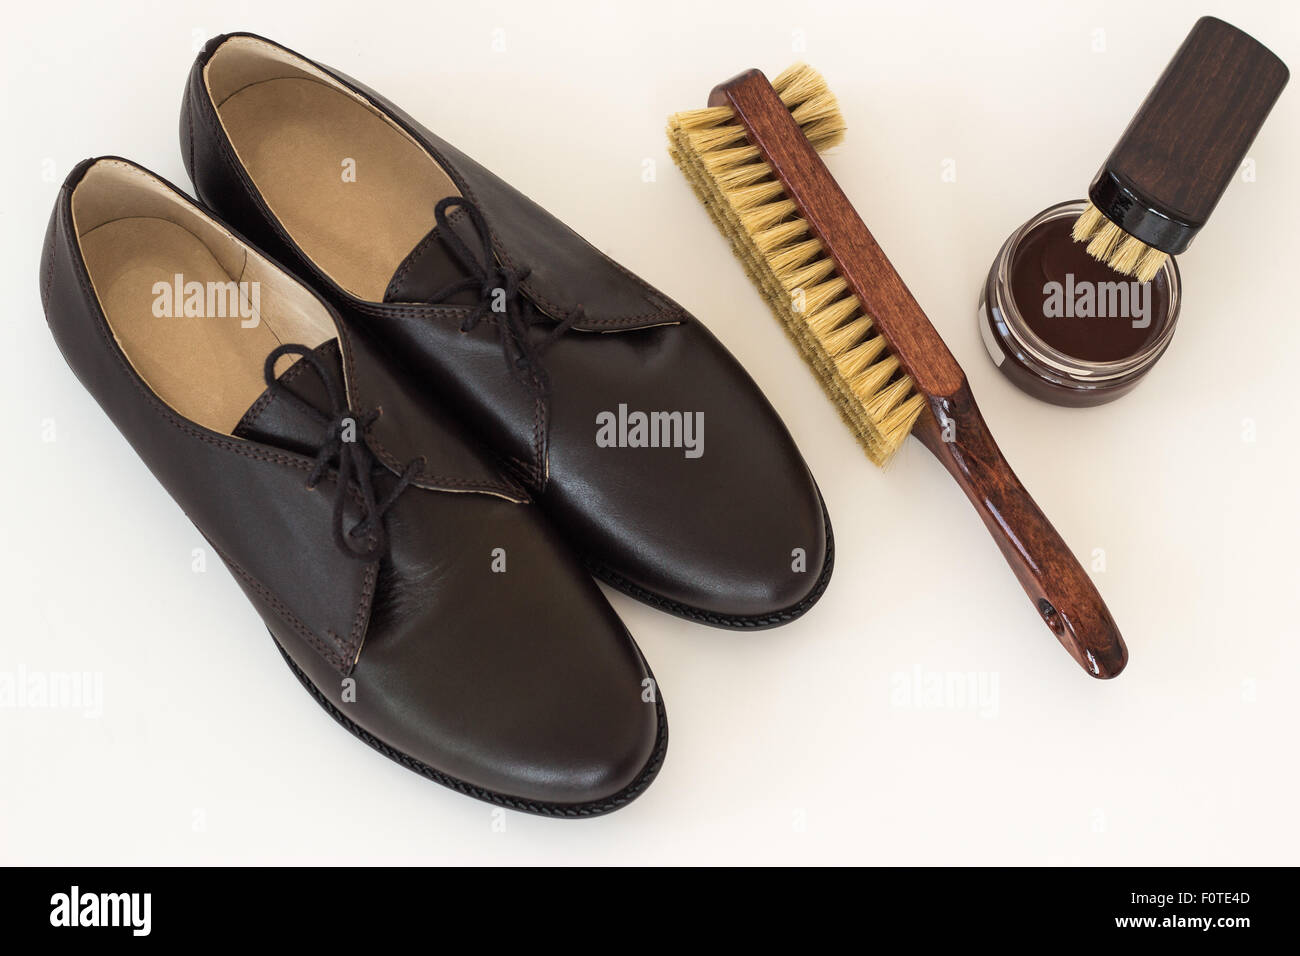 Isolated brown shoes and means on care of footwear - shoe-polish and brush - Stock Image